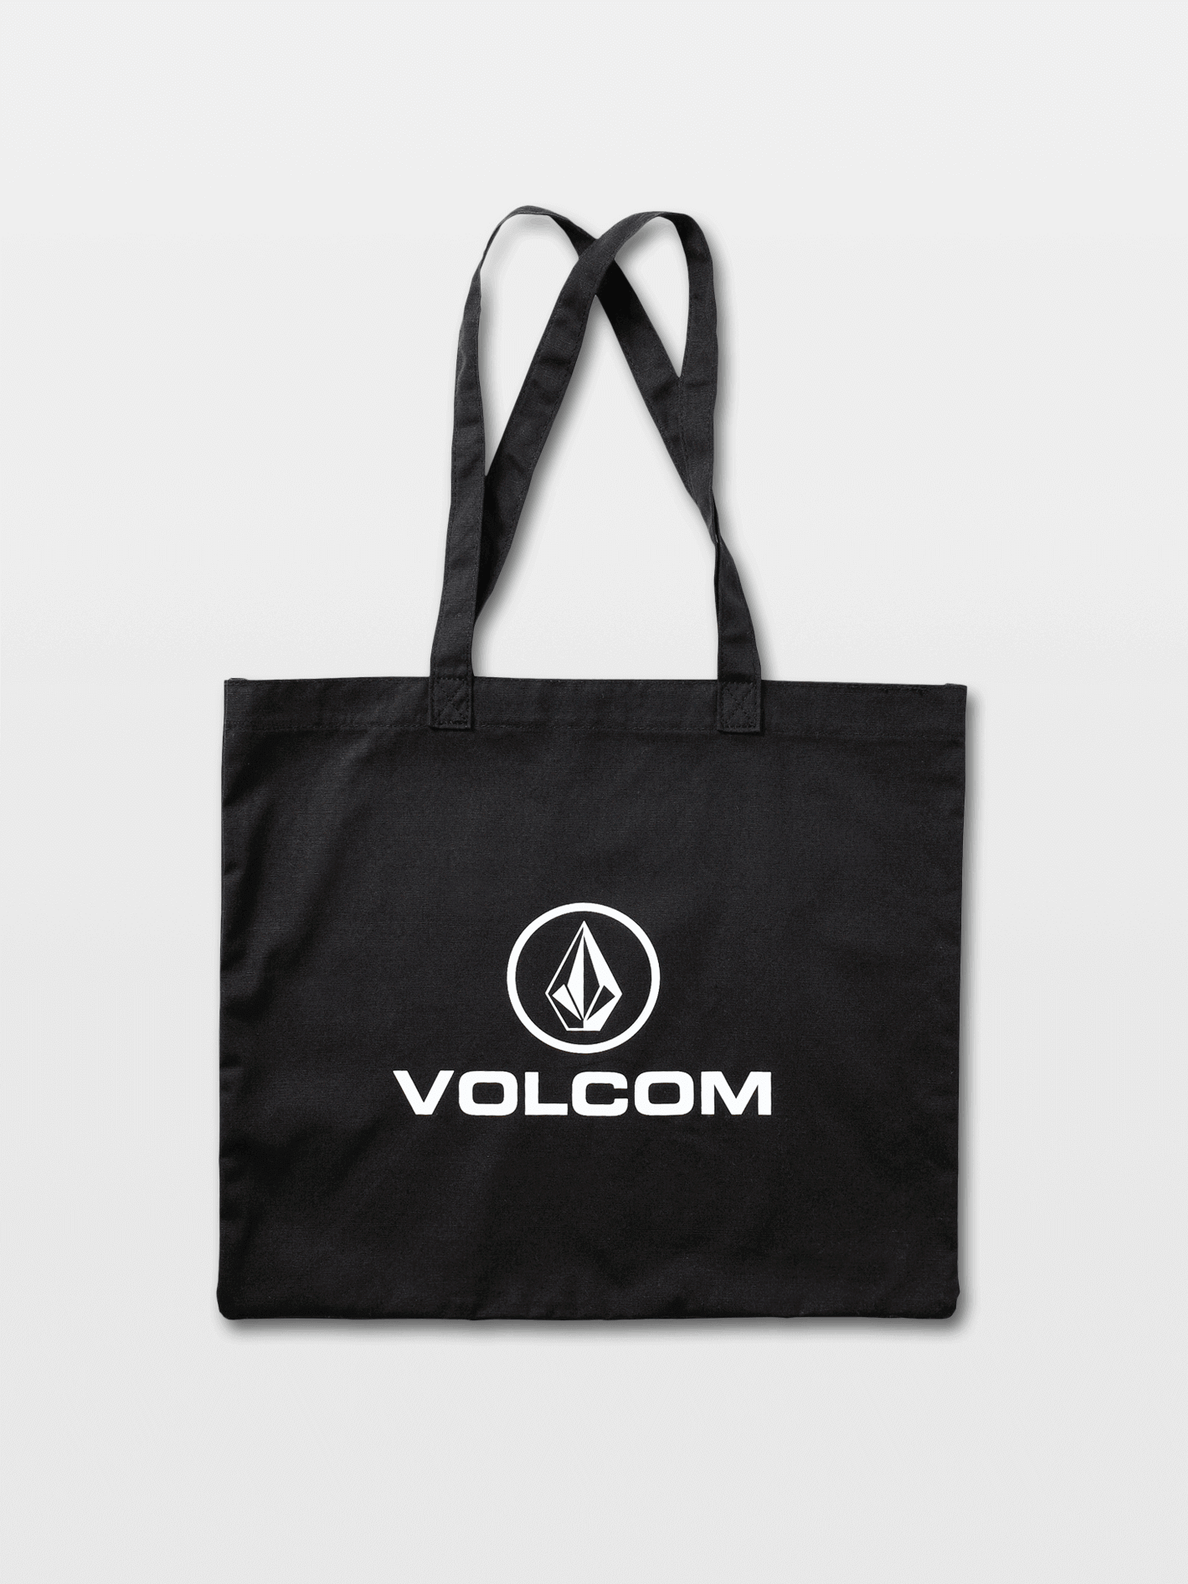 Volcom Reusable Tote - Black